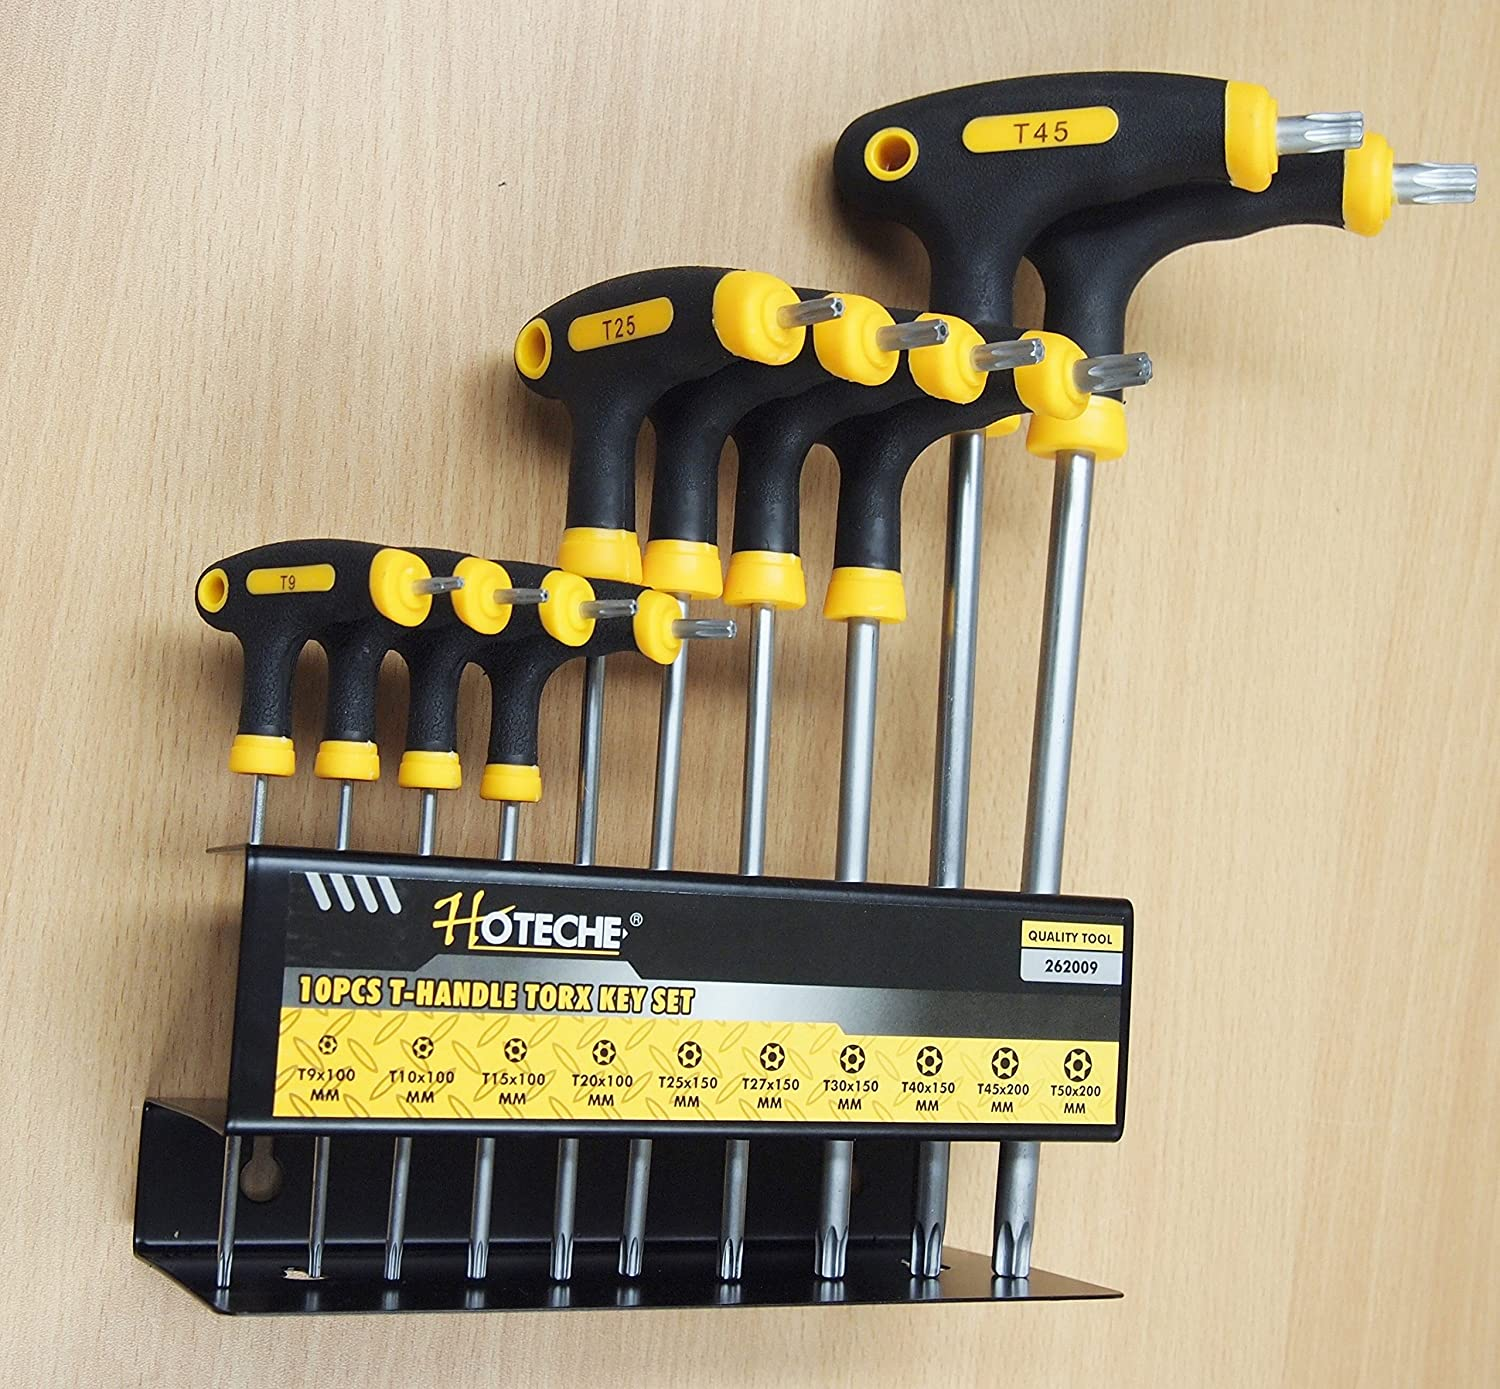 Hoteche 10PC T-Handle Torx Star Key Wrench Set 2 Drive Ends Stand Rack